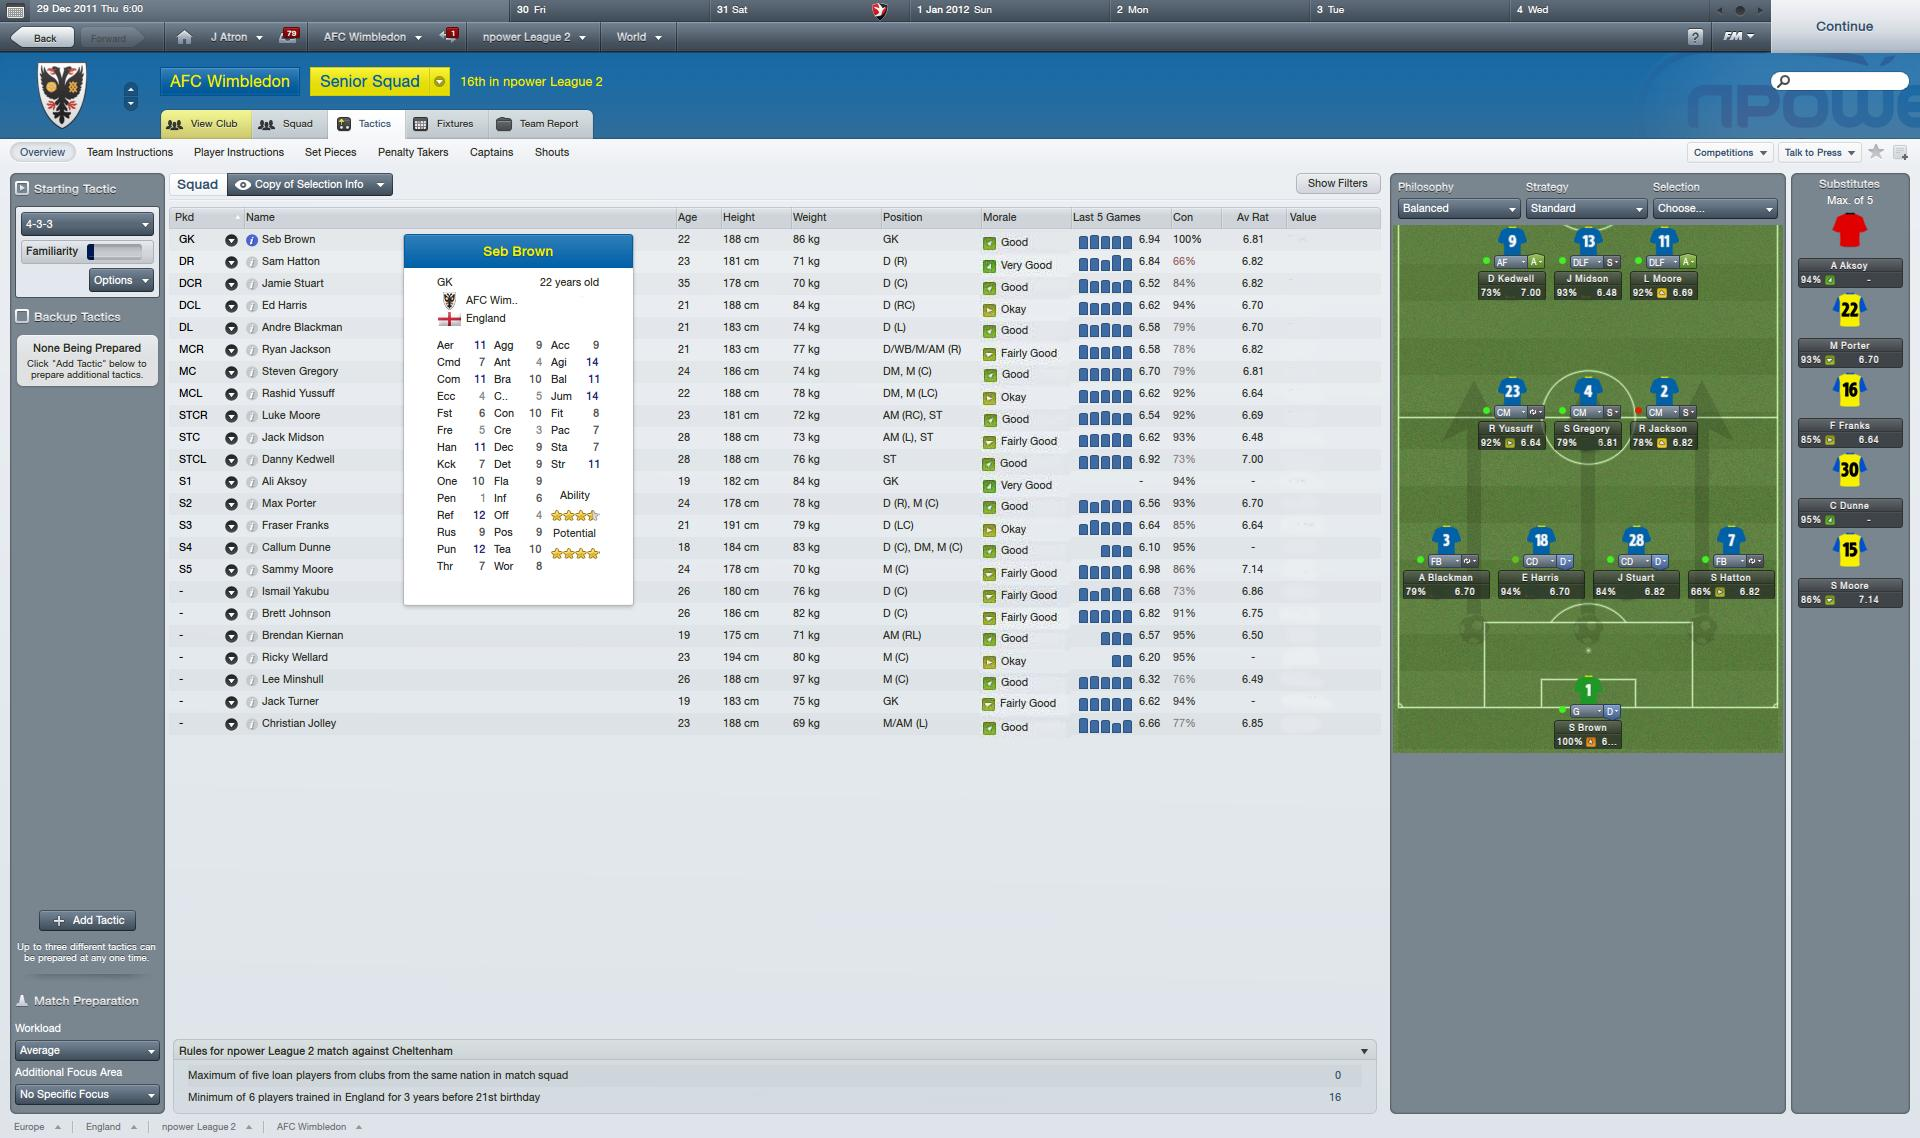 download latest patch for football manager 2011